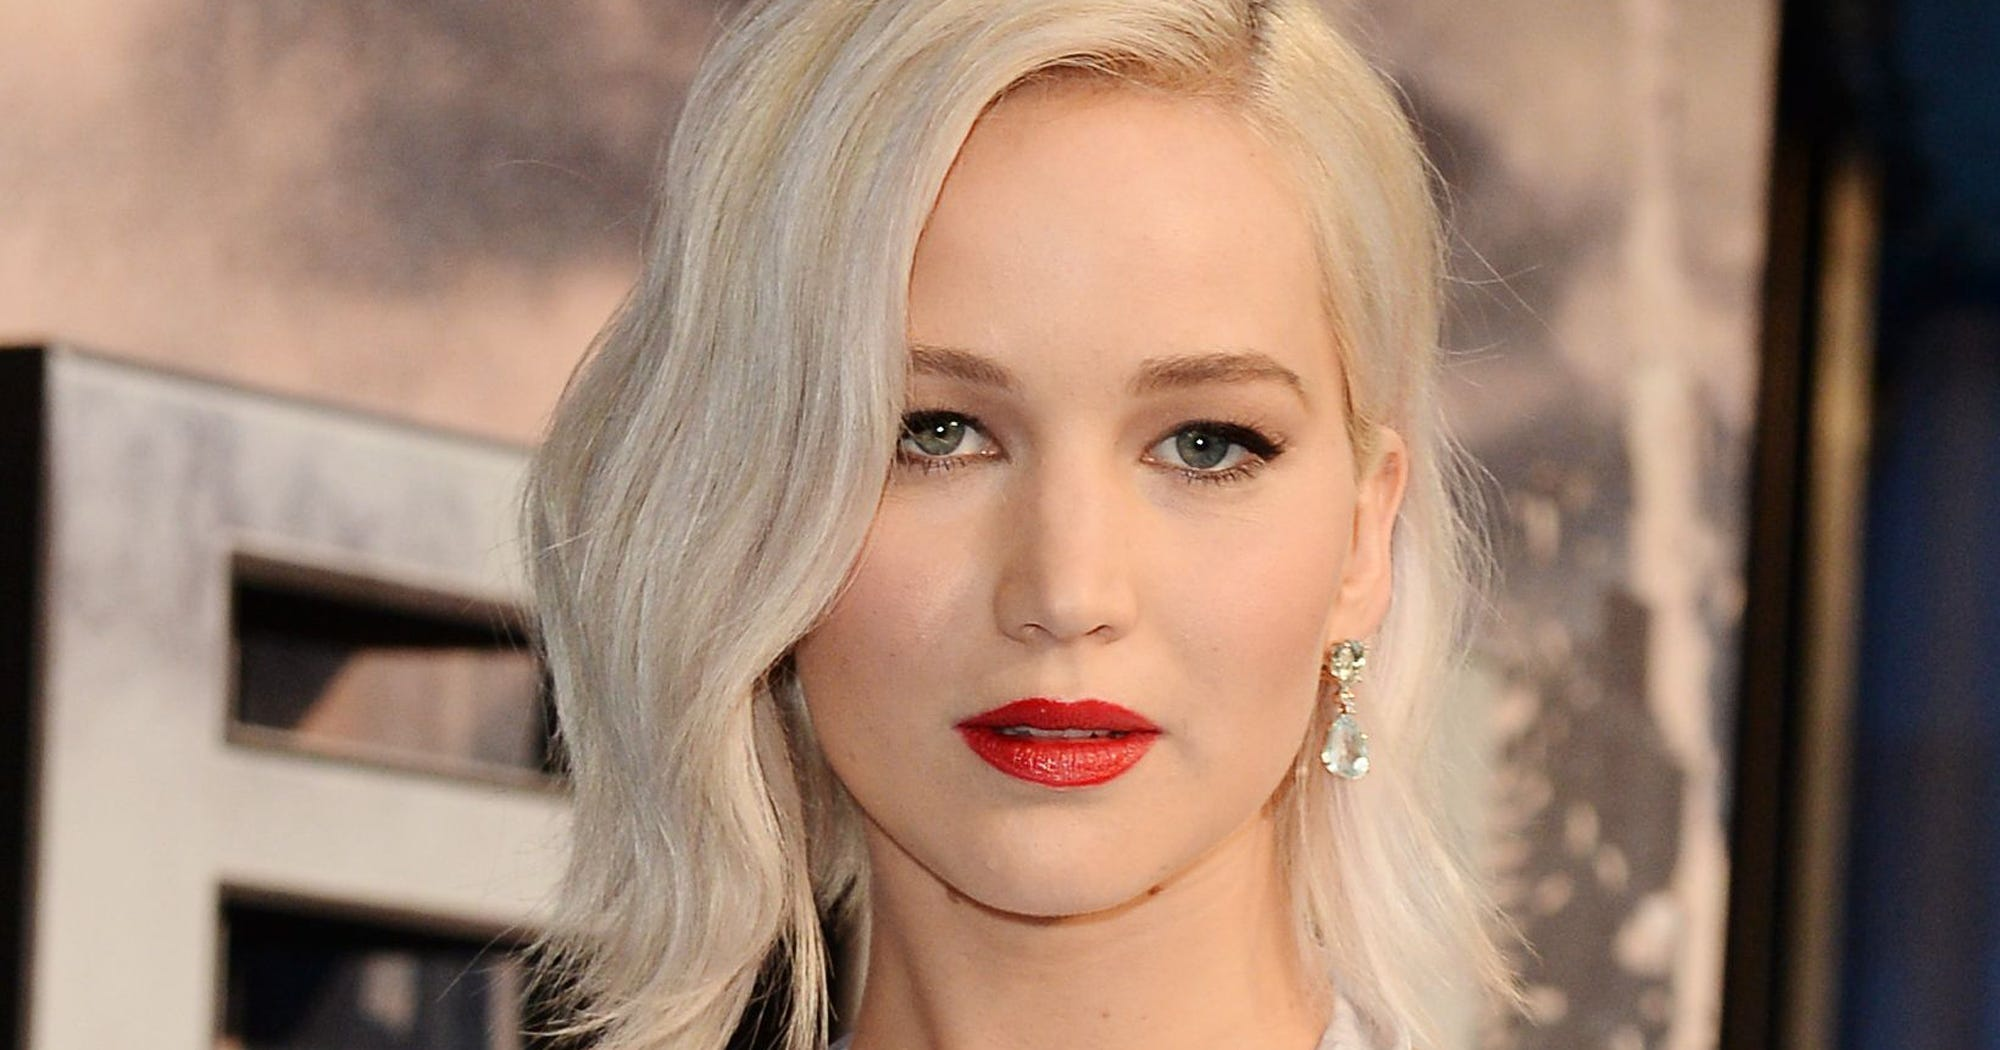 Jennifer Lawrence Suffered The Consequences Of Lying At The Airport